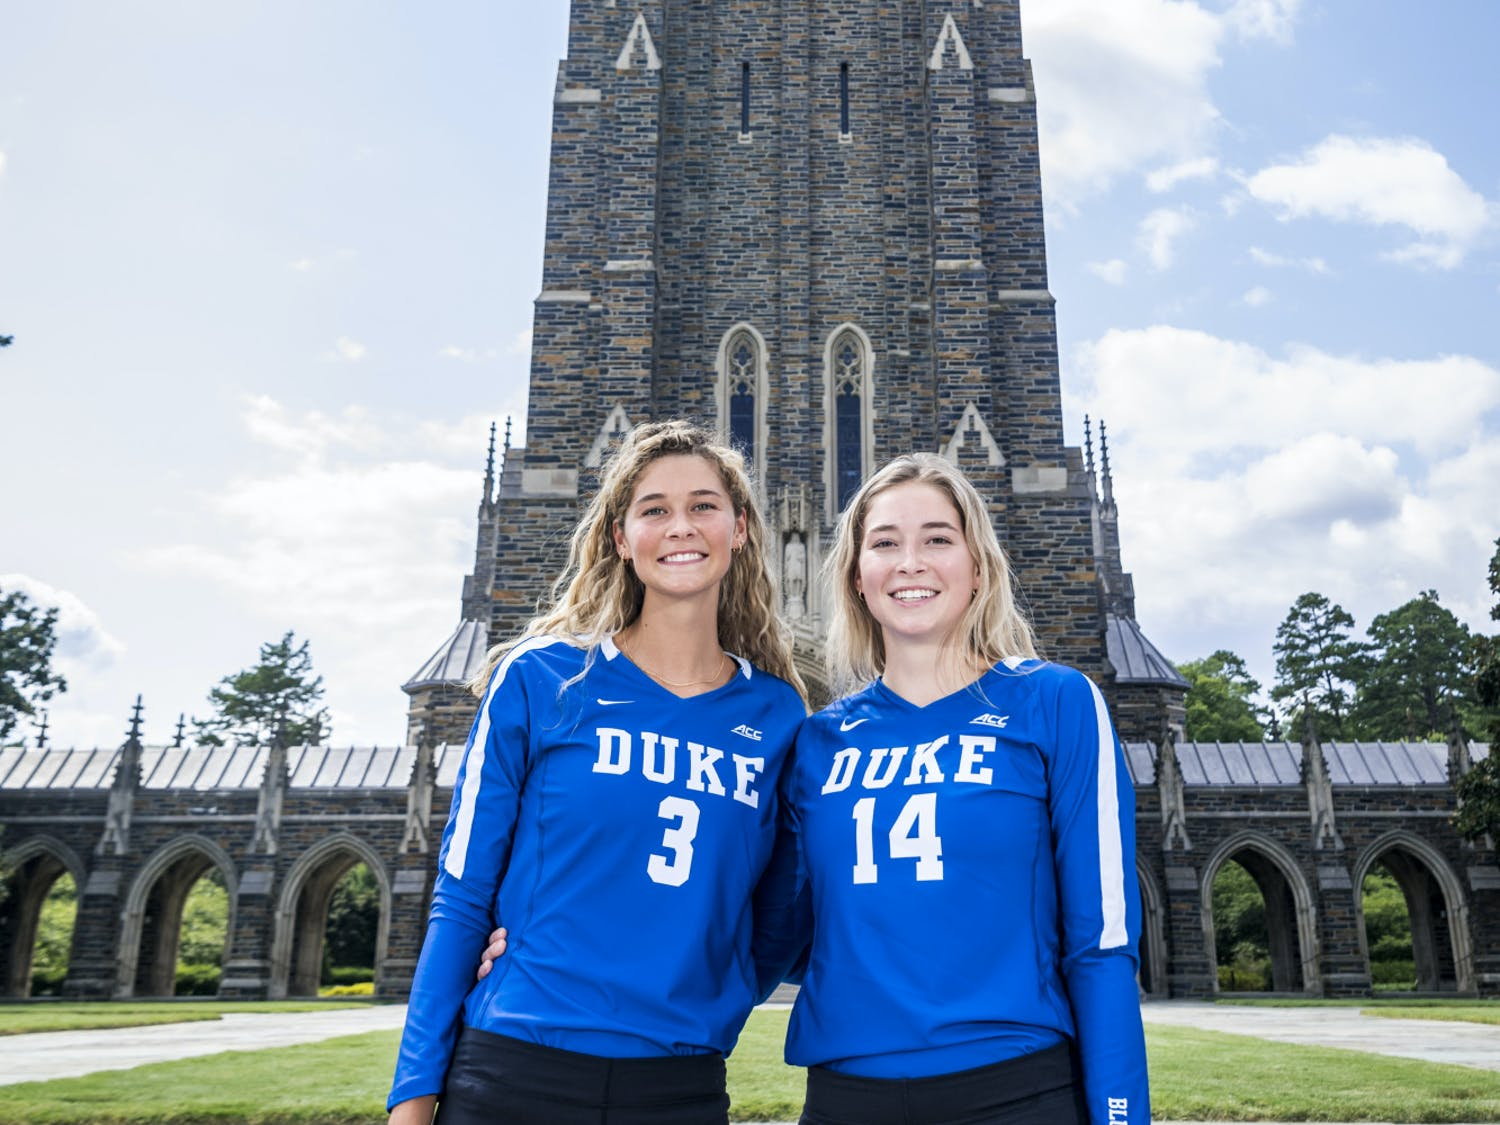 Mackenzie (left) and Taylor (right) Cole were reunited this past offseason after Taylor transferred to Duke.